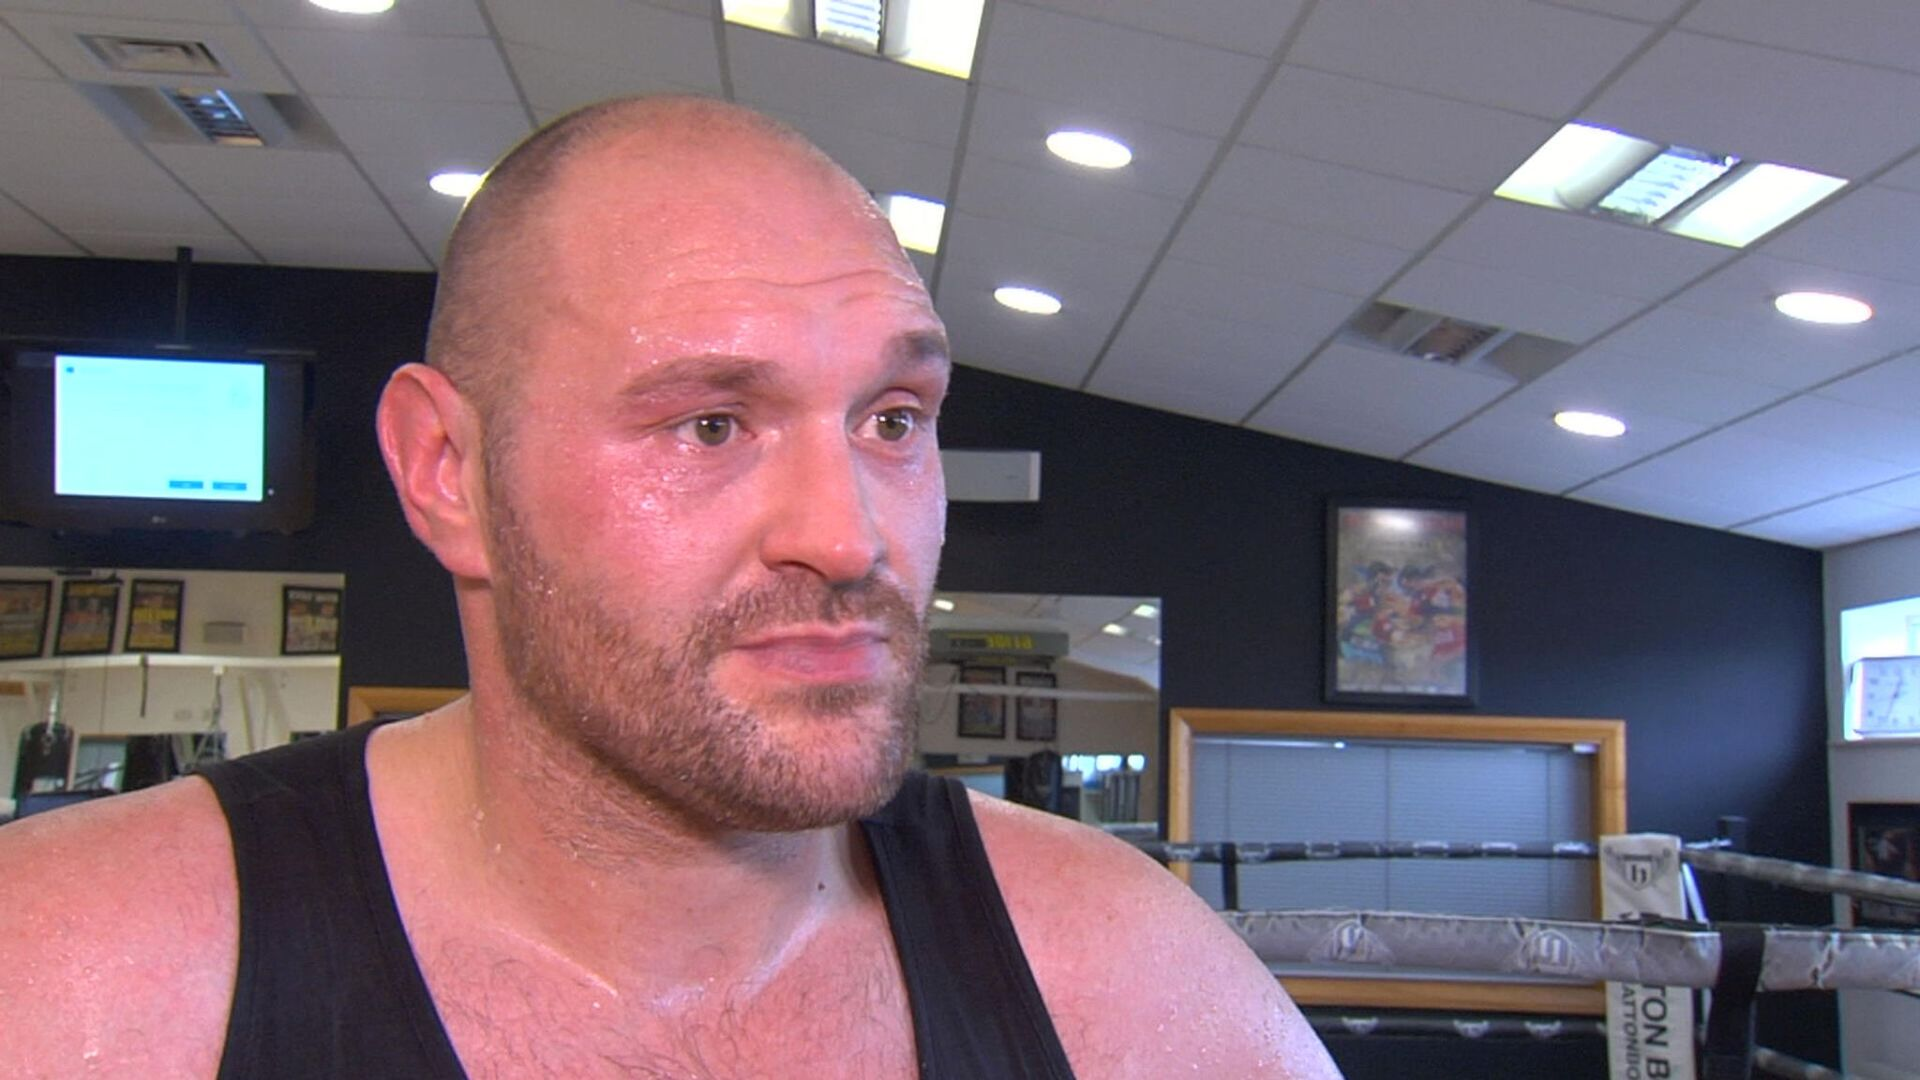 Boxing: Tyson Fury Challenges Anthony Joshua Outside The Ring(VIDEO) - Fury